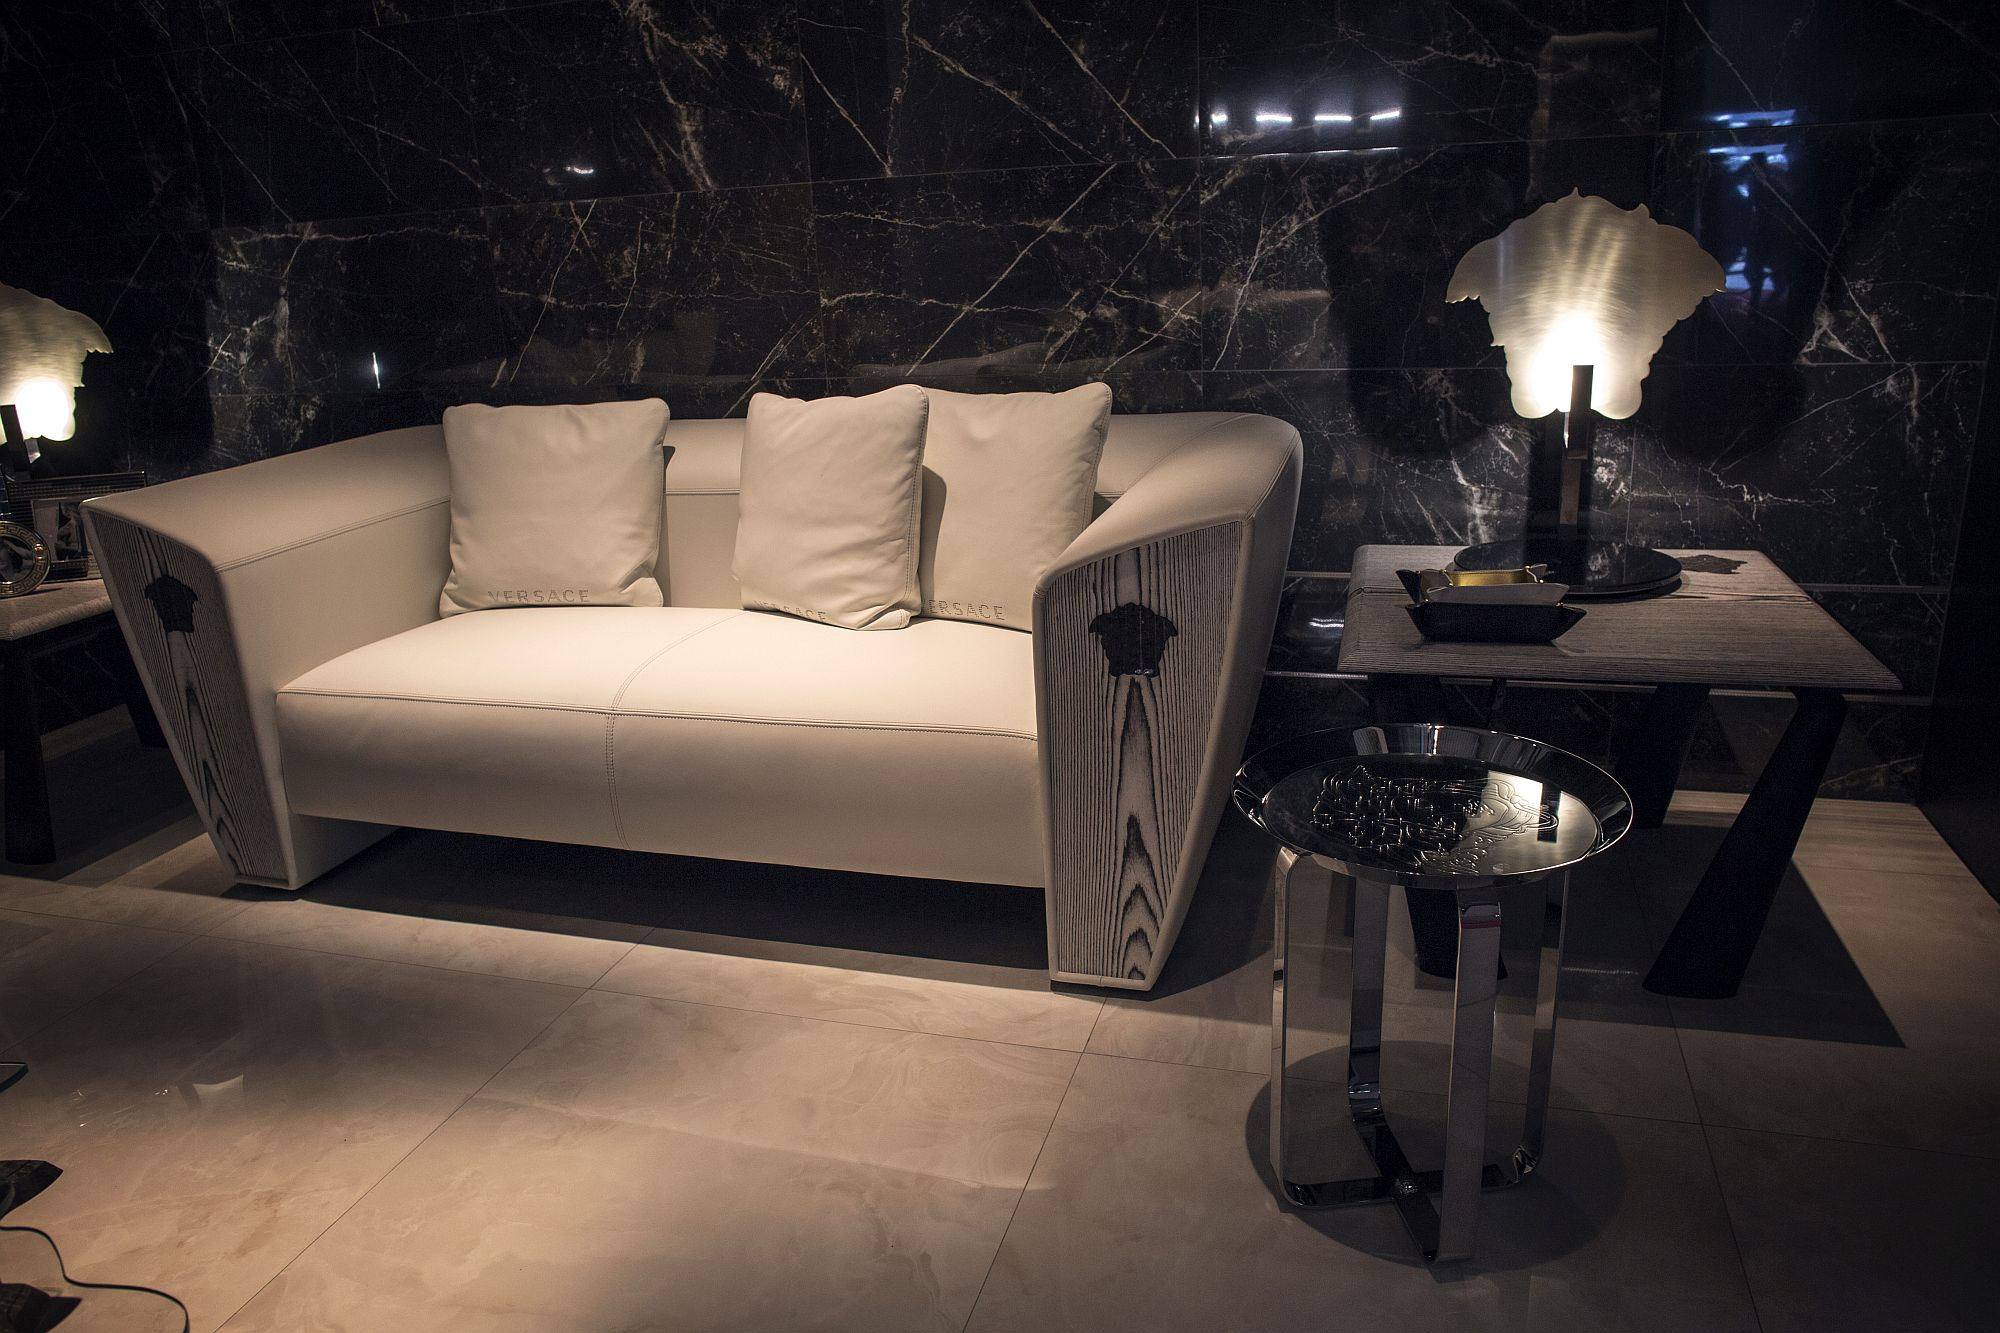 Comfortable couch in whit with classic modern design